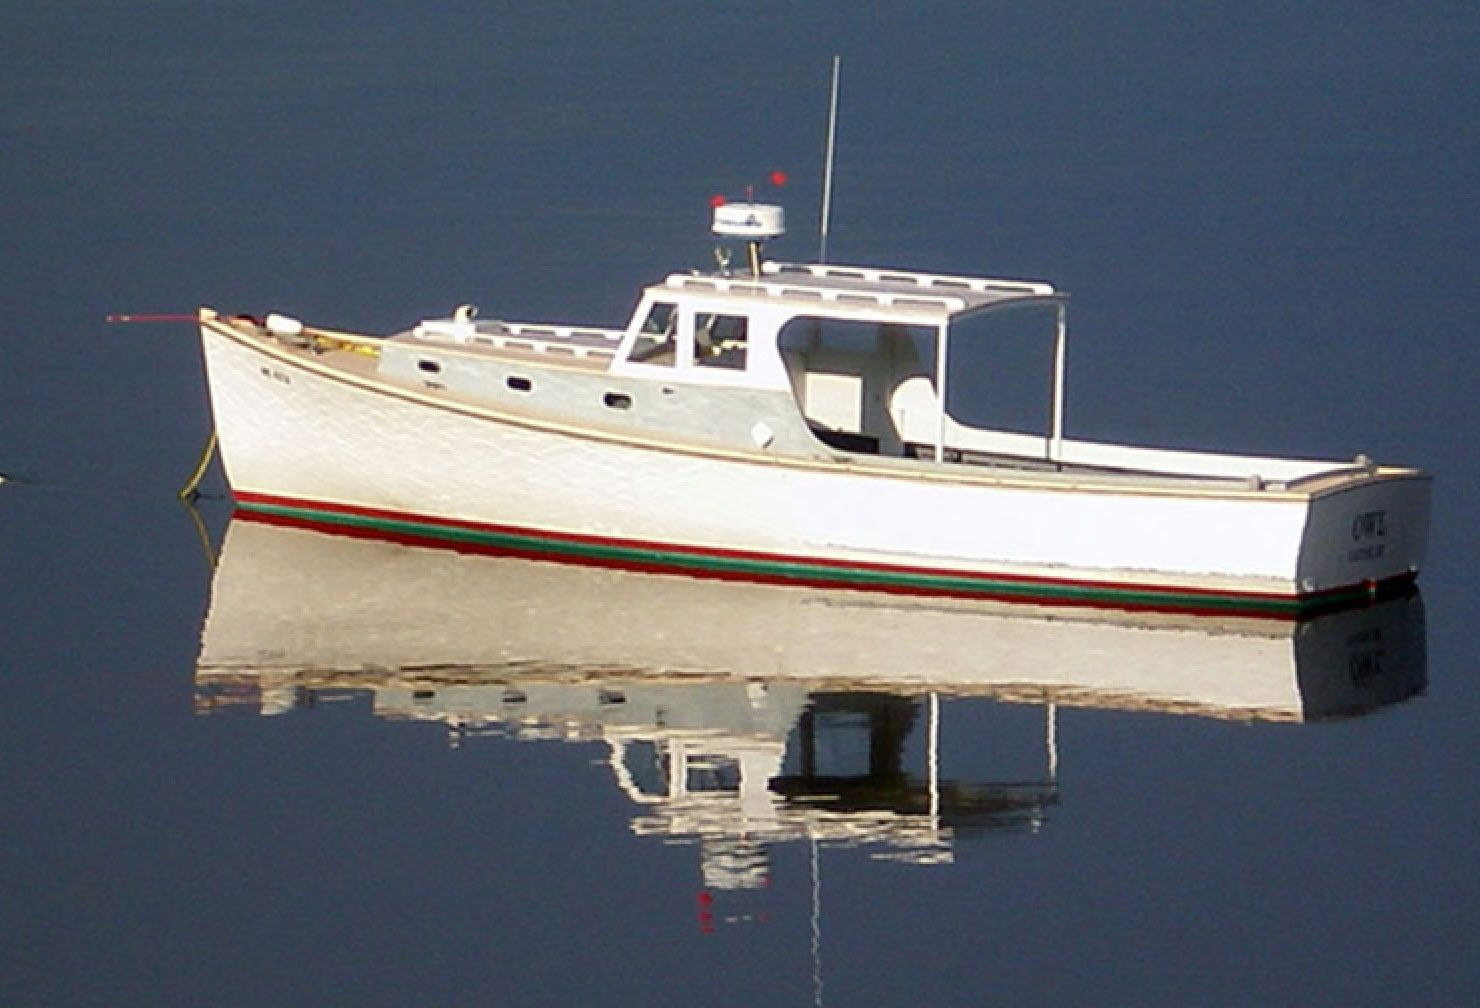 Owl A Wooden Lobster Yacht Built By Newbert Wallace In 1957 Boat Design Wooden Boat Plans Boat Building